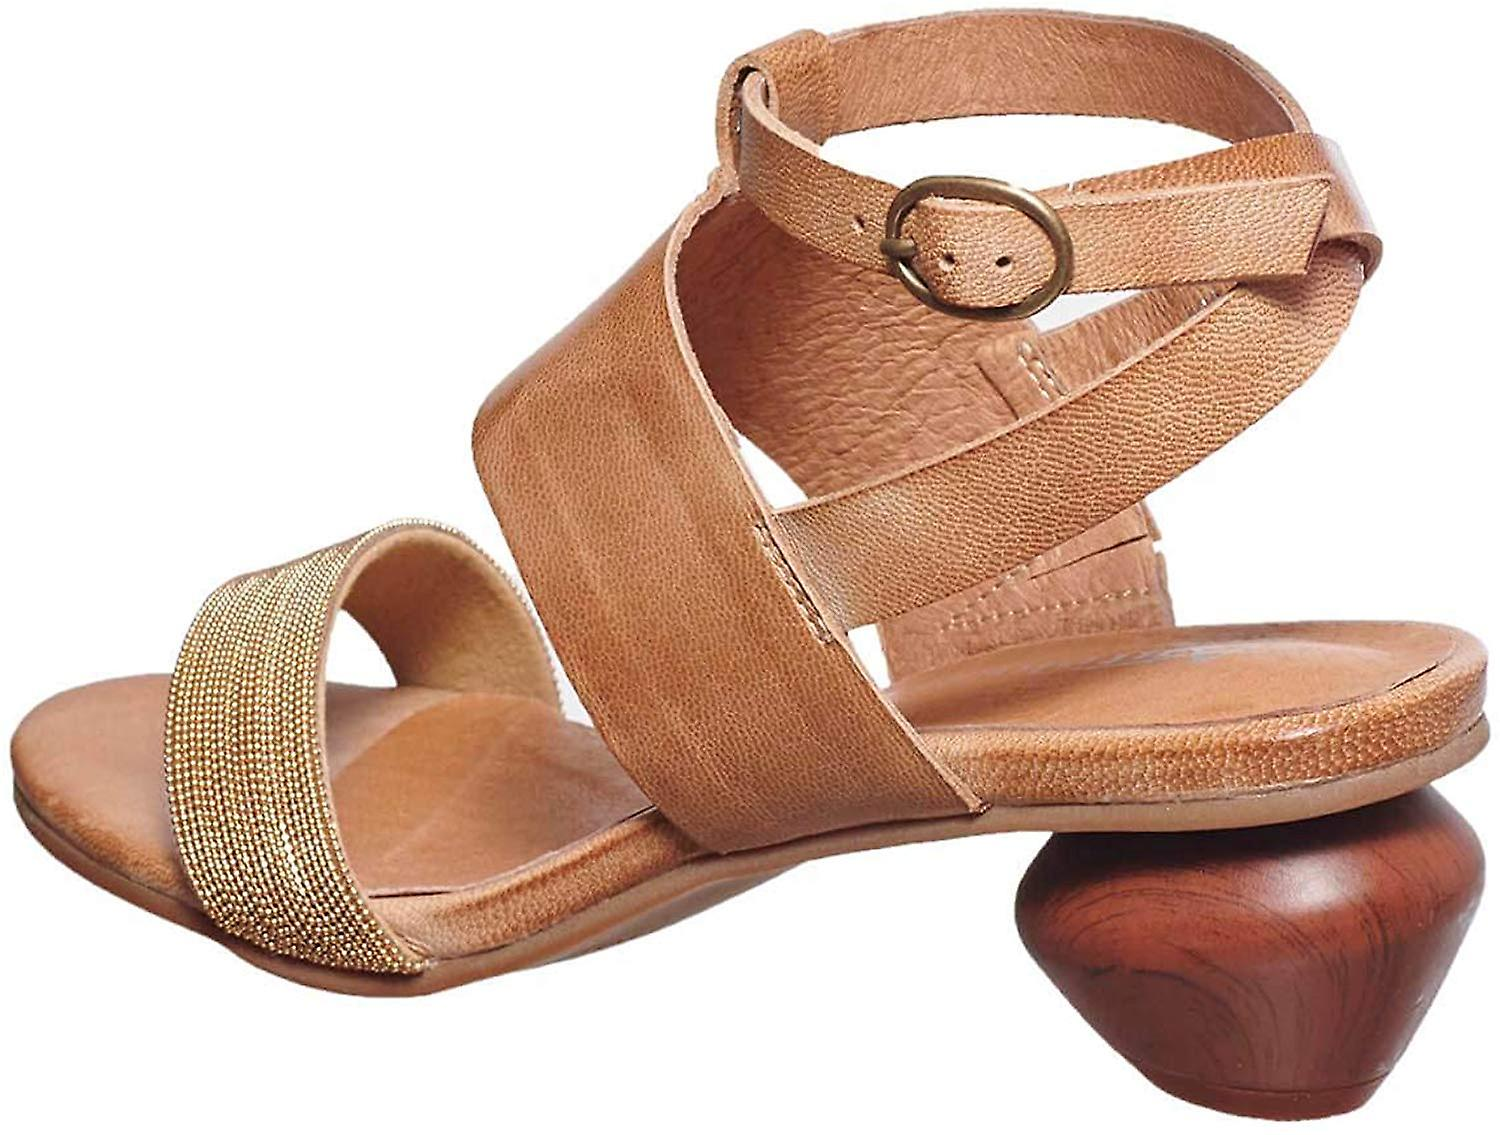 Antelope Women's 480 Leather Ankle Wrap Egg Heeled Sandal